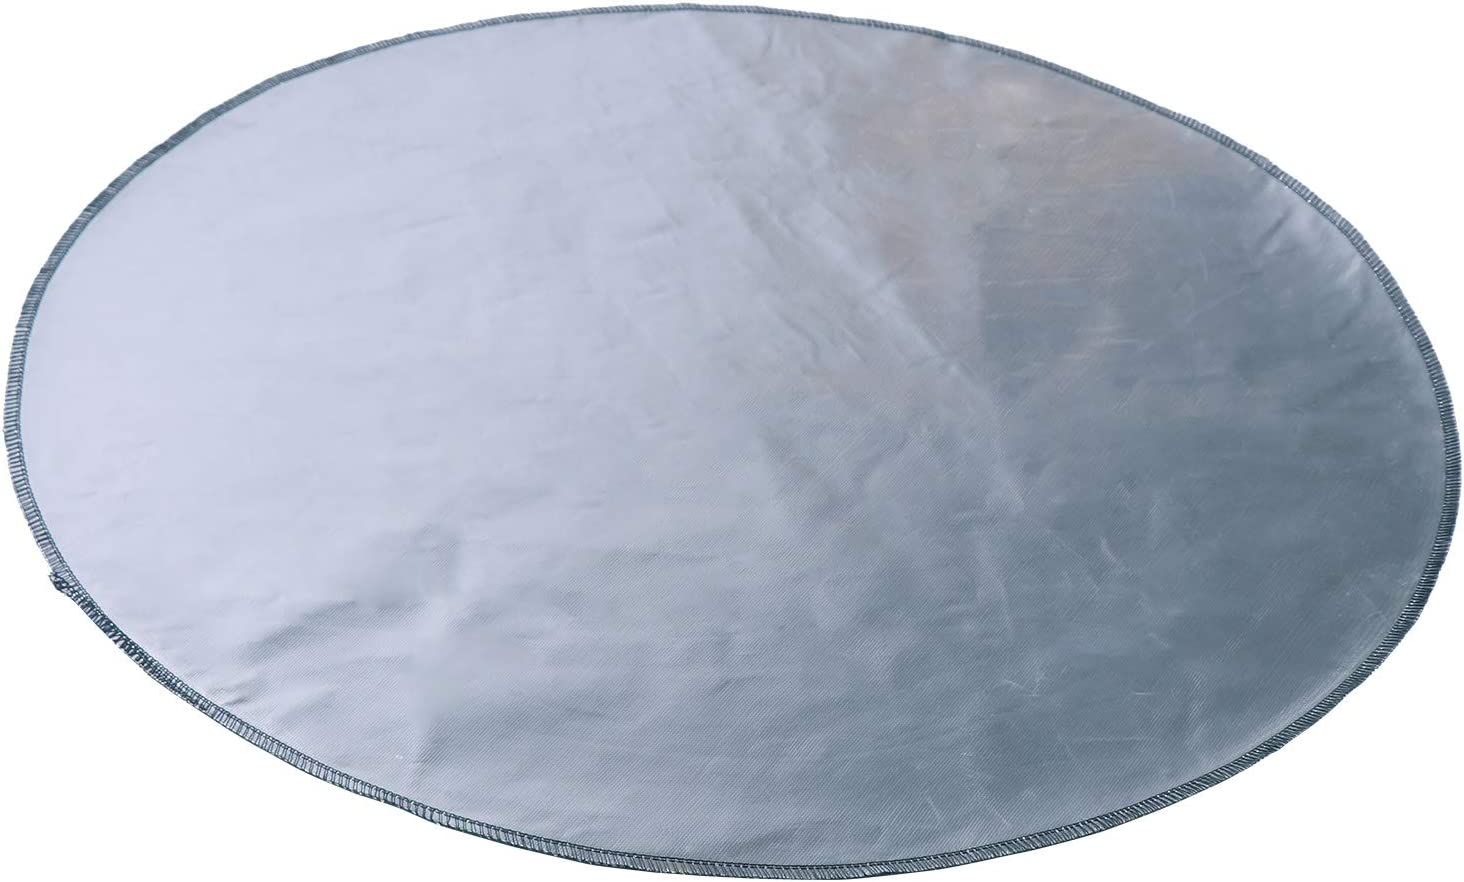 Lawn Deck Patio Outdoor or Campsite Protection Ember Mat Pad Silver 24/'/'x24/'/' Uterstyle Fire Pit Mat Round Grill Mat for Ground